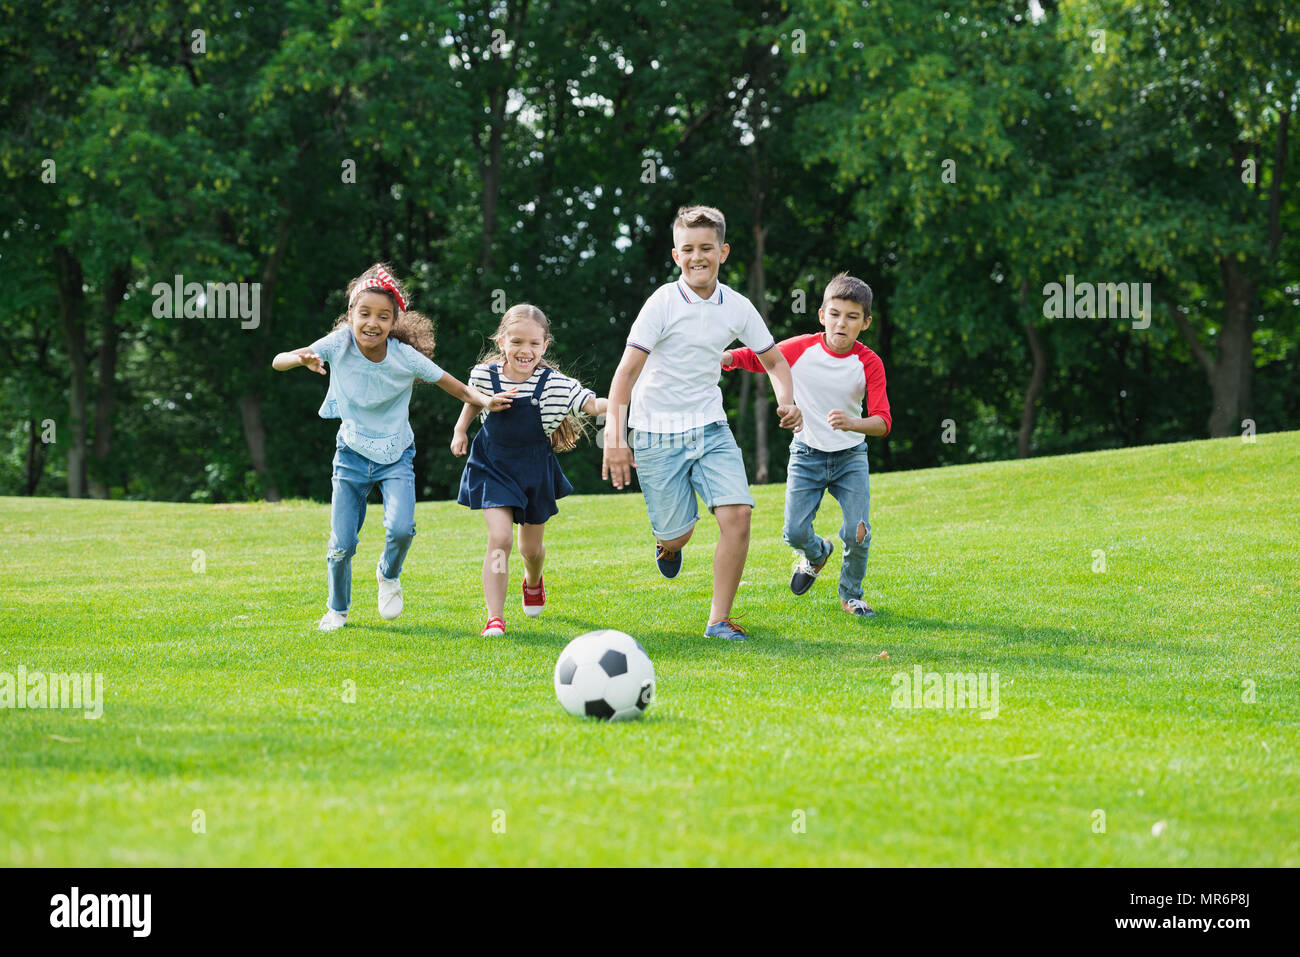 Cute happy multiethnic kids playing soccer with ball in park - Stock Image